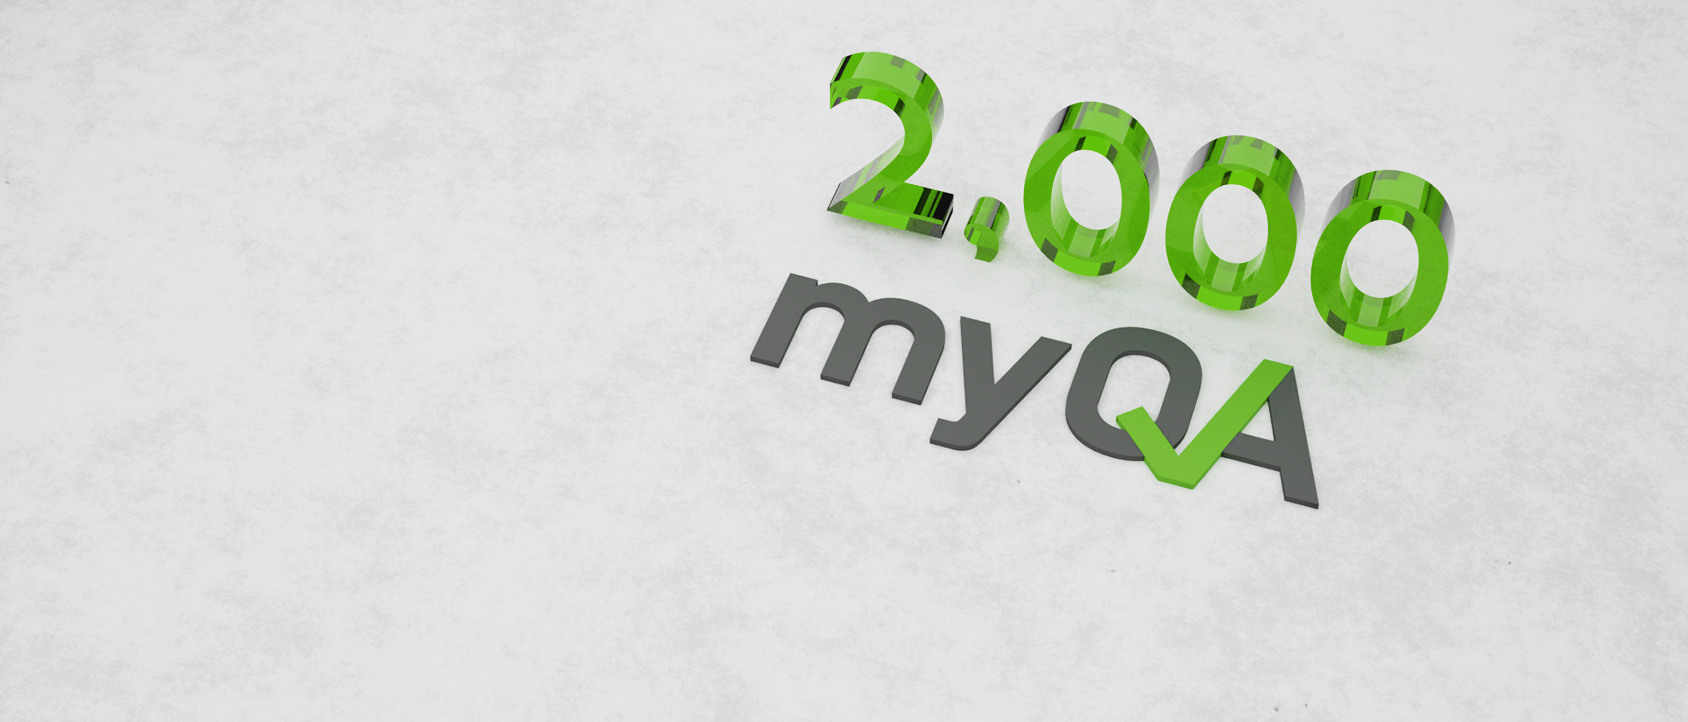 The Most Trusted QA Platform > 2,000 sites have chosen myQA!